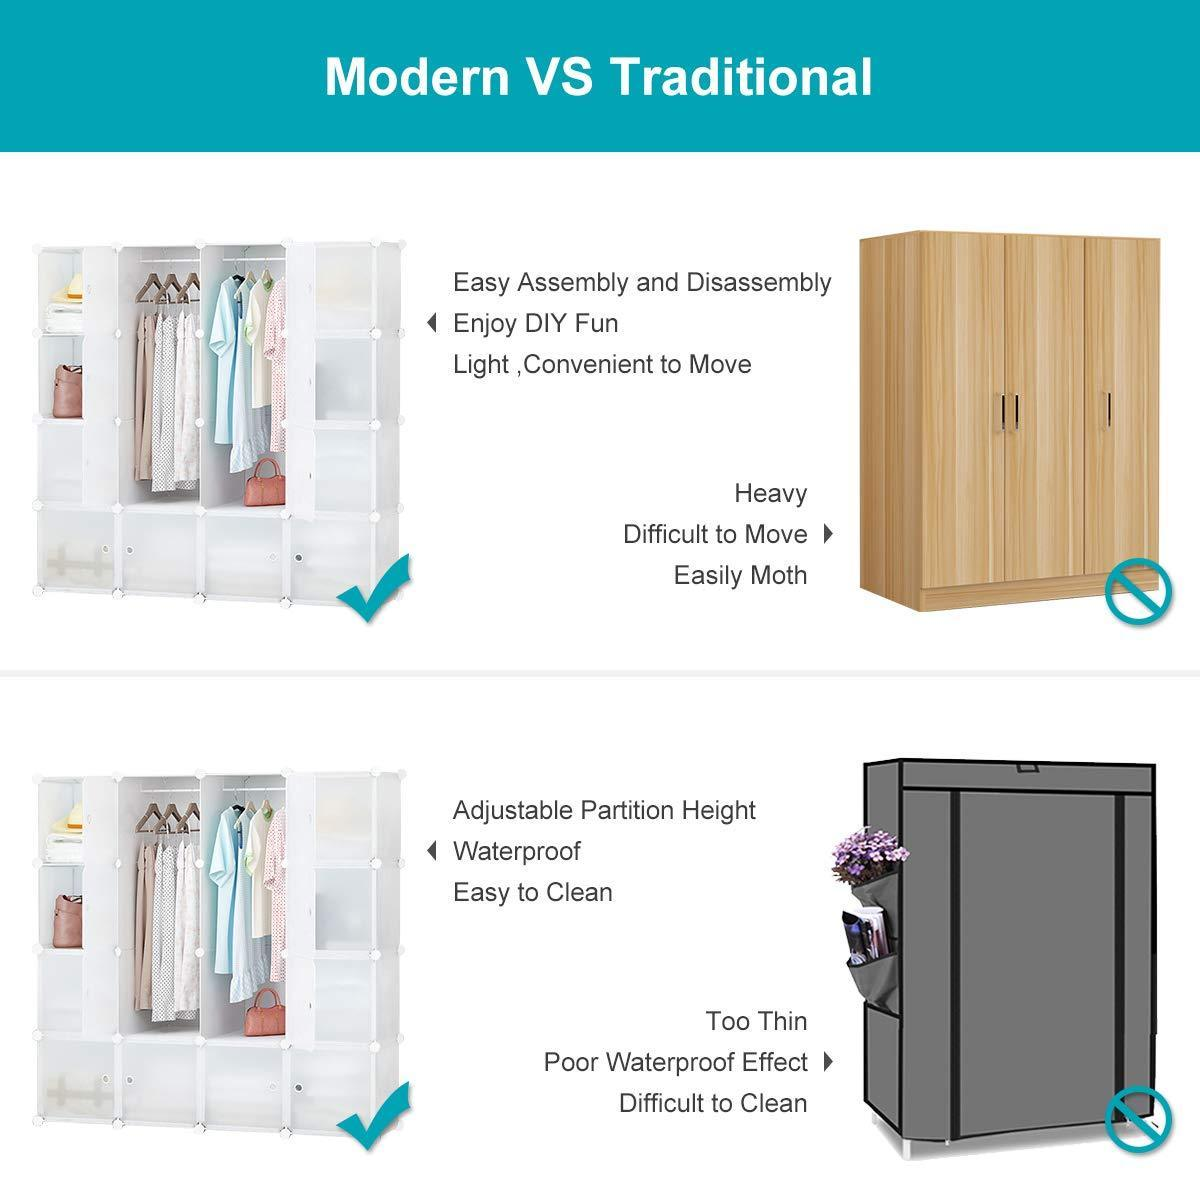 New honey home modular storage cube closet organizers portable plastic diy wardrobes cabinet shelving with easy closed doors for bedroom office kitchen garage 16 cubes white